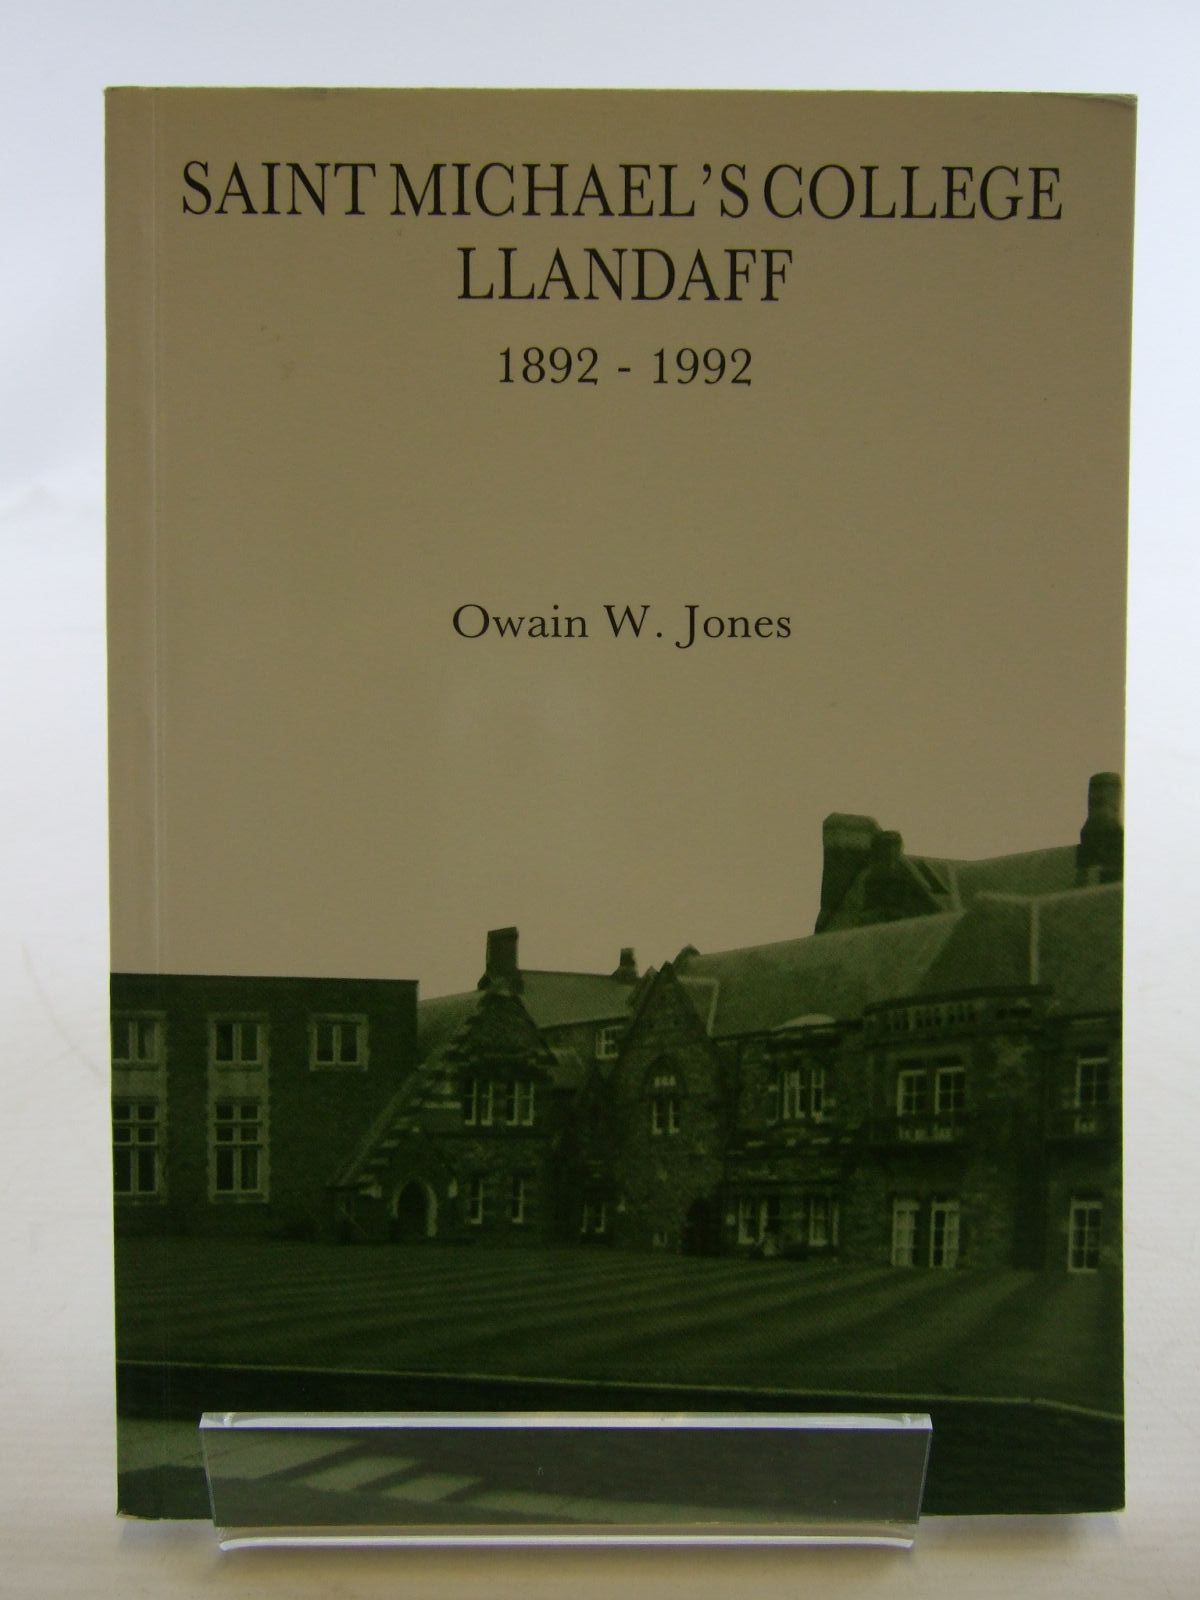 Photo of SAINT MICHAEL'S COLLEGE LLANDAFF 1892 - 1992 written by Jones, Owain W. published by J.D. Lewis & Sons (STOCK CODE: 2107415)  for sale by Stella & Rose's Books